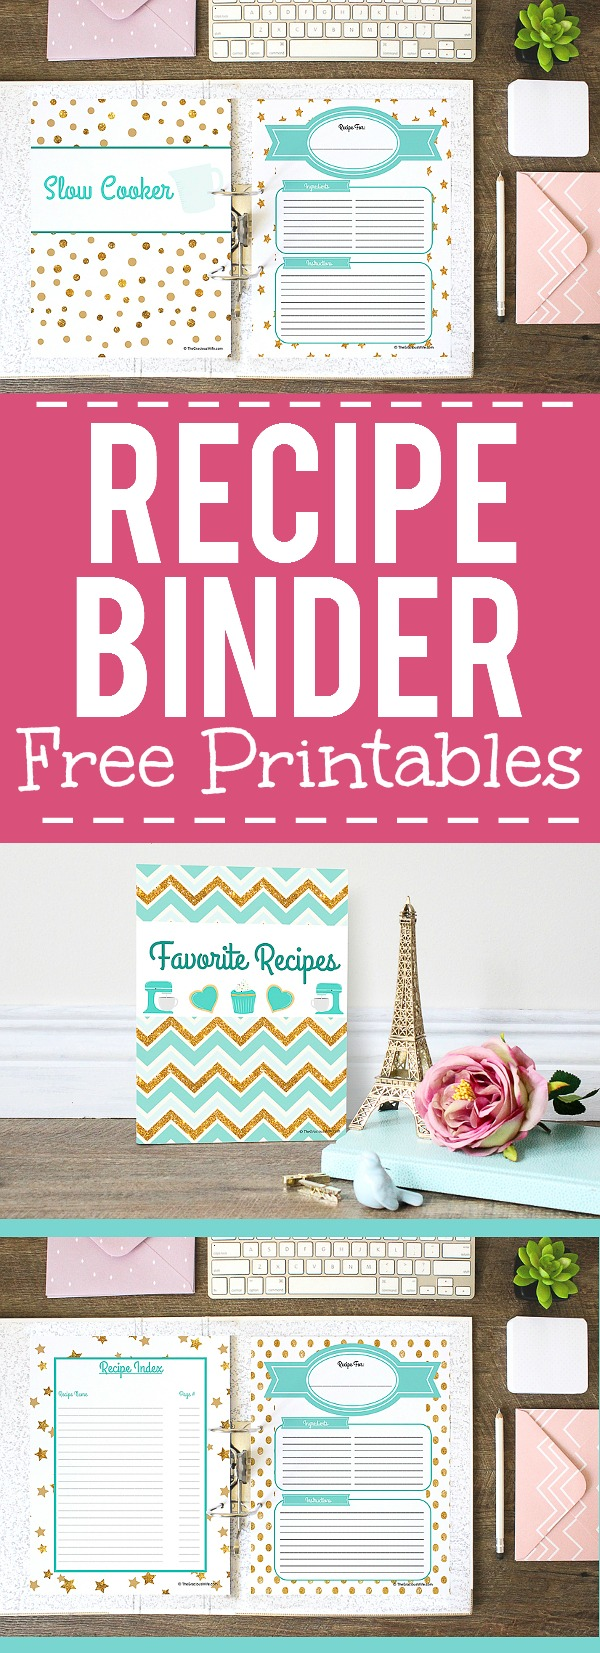 How to Make a Recipe Binder with Free DIY Recipe Binder Printables - Organize all of your favorite recipes and recipes you want to try in one cute place with these cute, pretty, and practical DIY Recipe Binder Printables in 4 different colors.